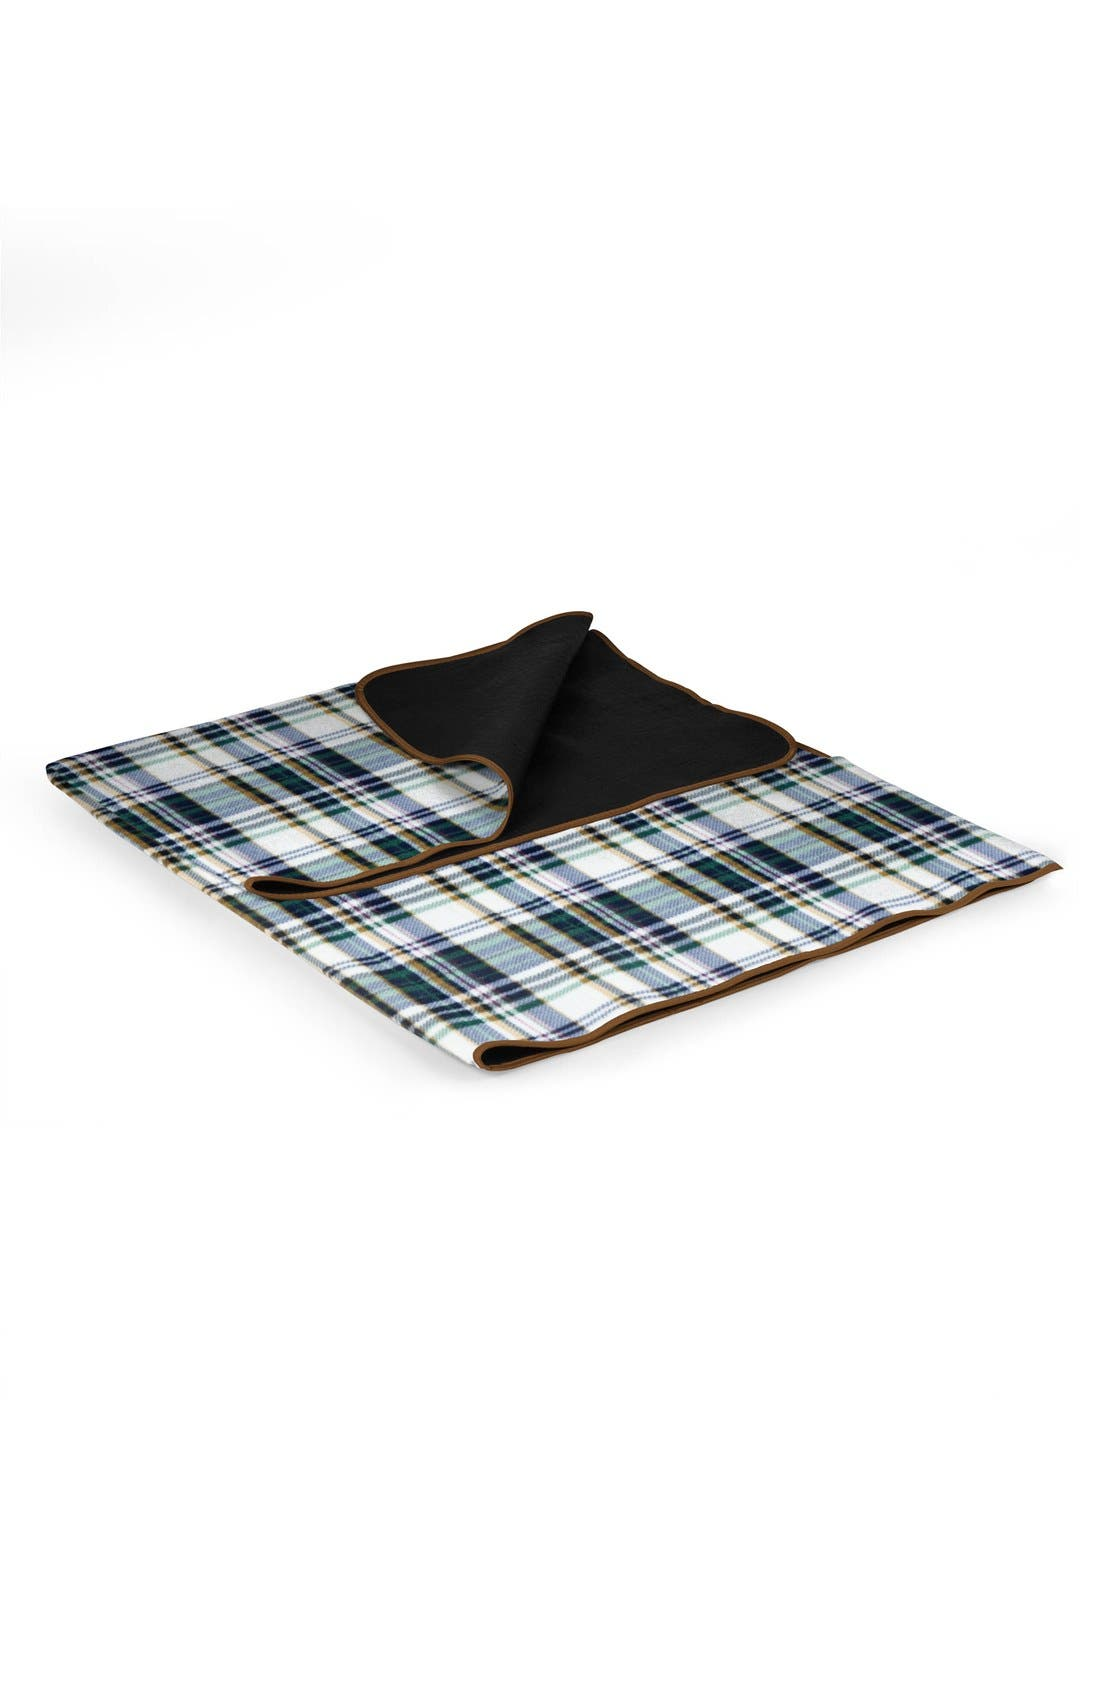 'English Plaid XL' Fold-Up Blanket Tote,                             Alternate thumbnail 2, color,                             BROWN